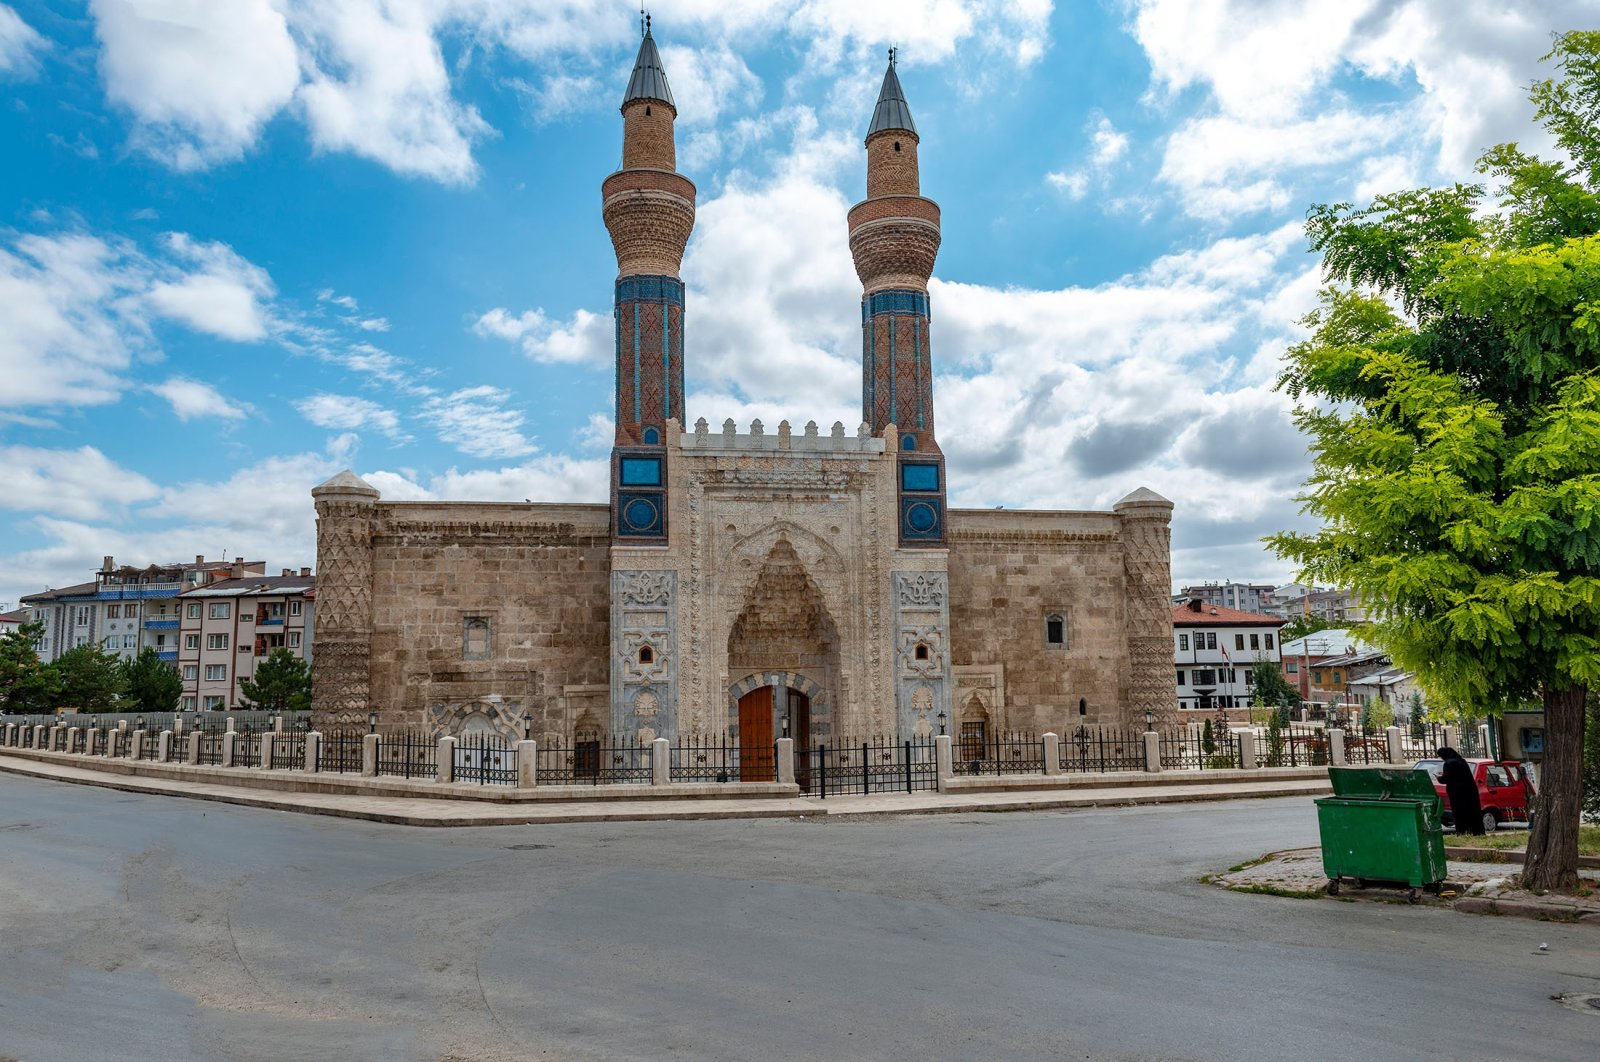 Gökmedrese in central Sivas province is one of the most prominent madrasas in Turkey. (Shutterstock Photo)